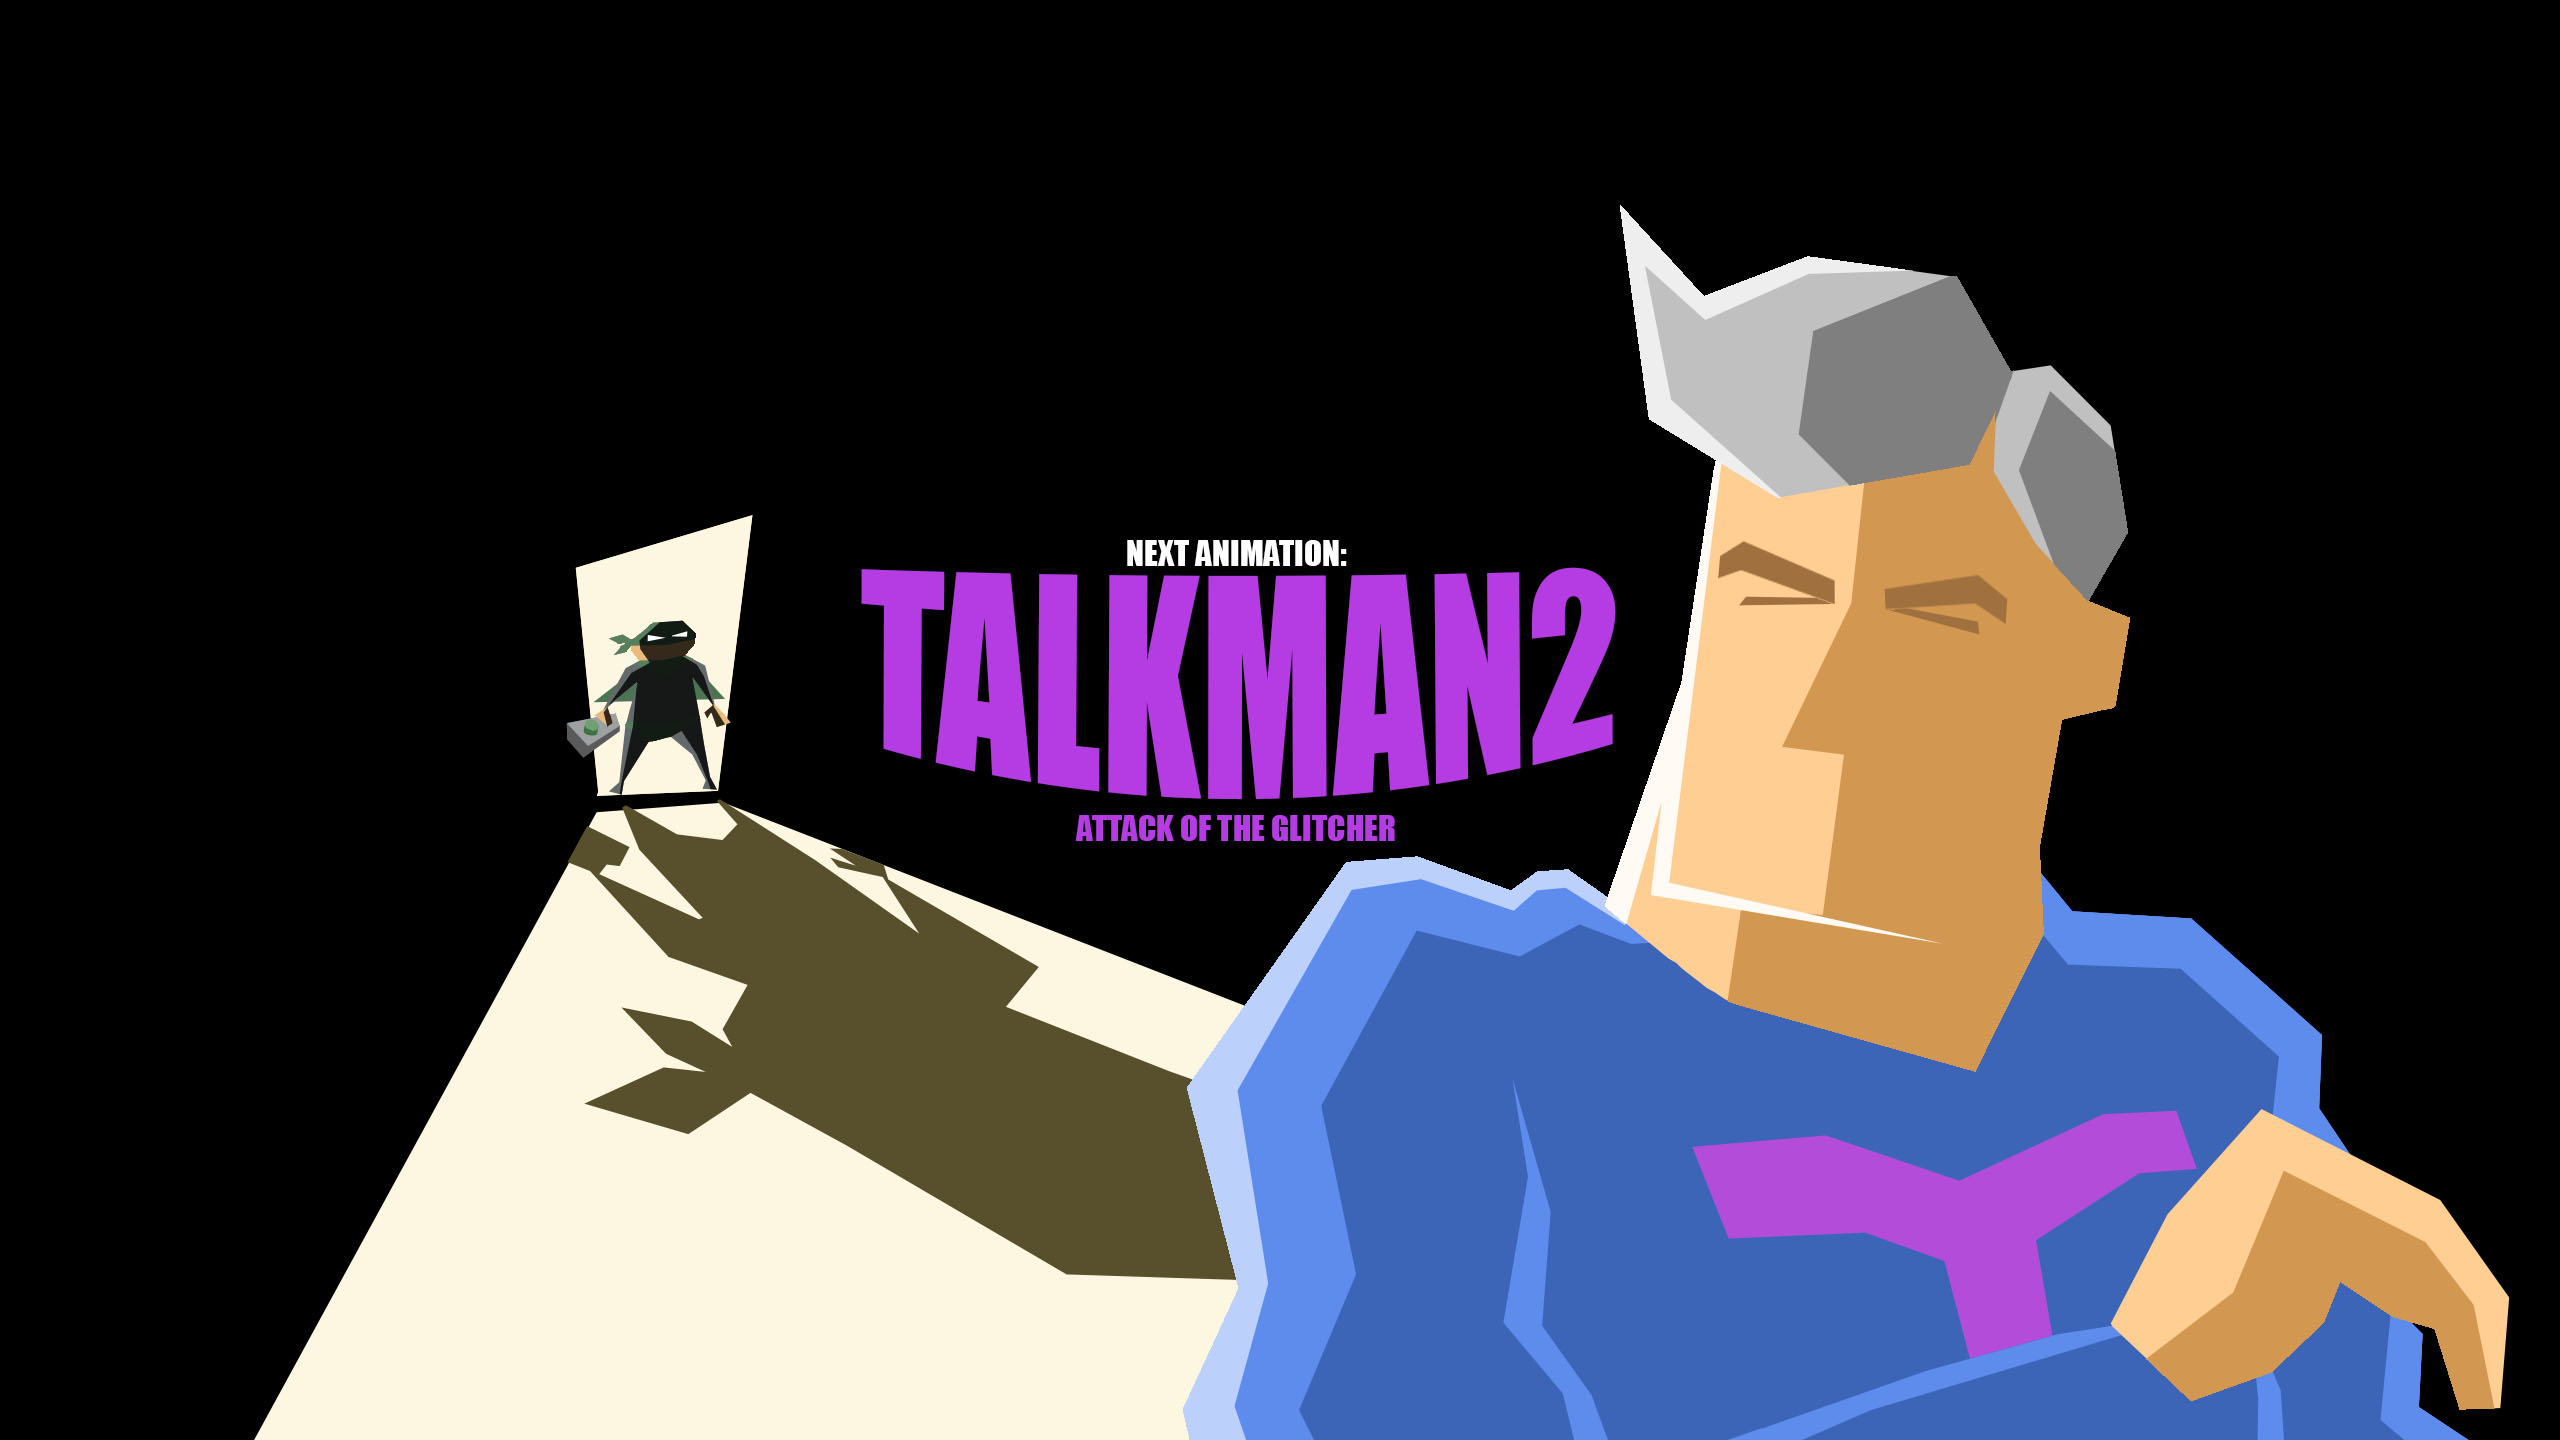 4841675_145554863111_facebookbanner_talkman2.jpg